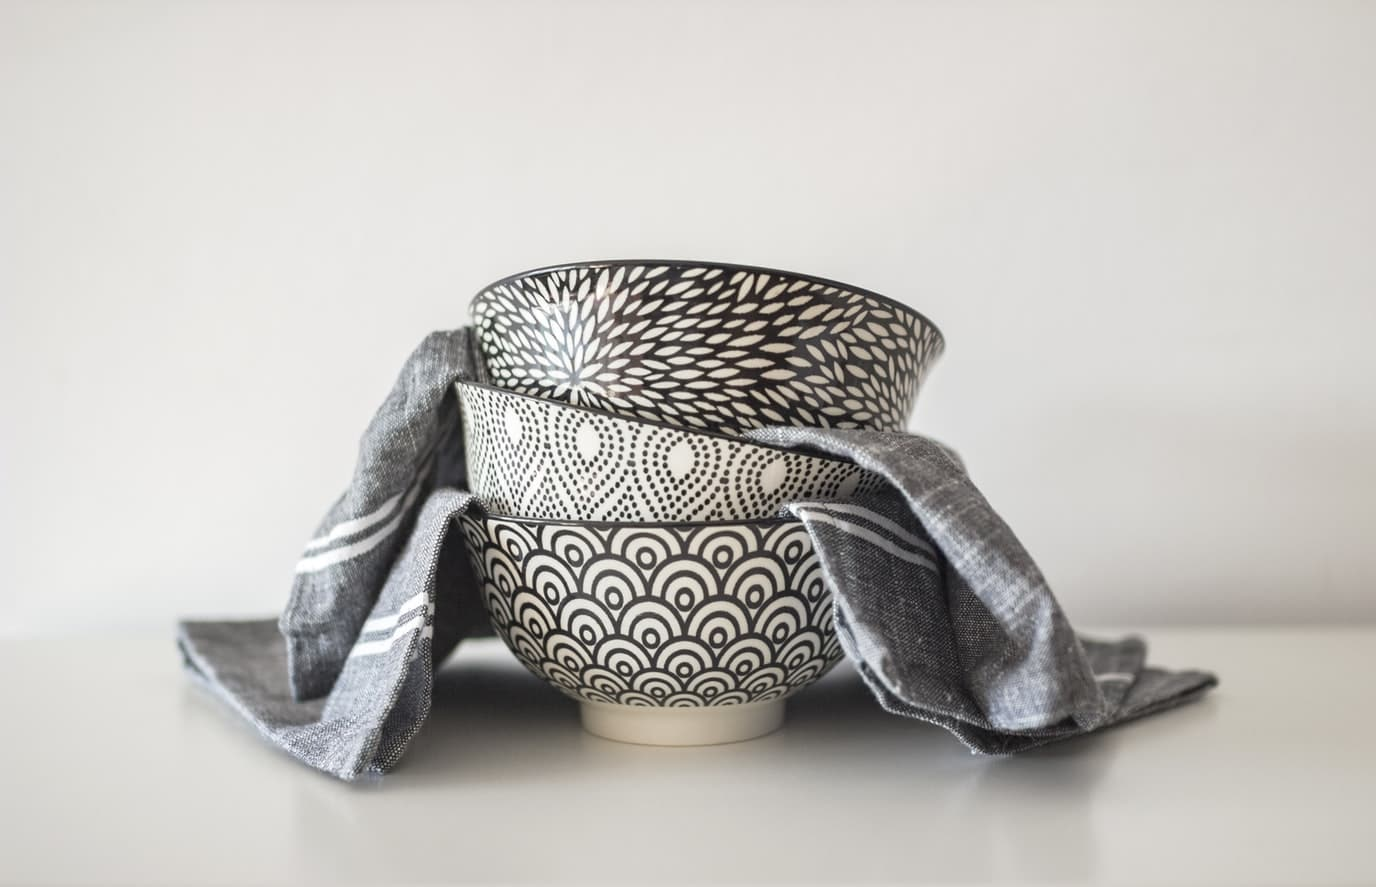 Three decorative soup bowls stacked up on top of each other.